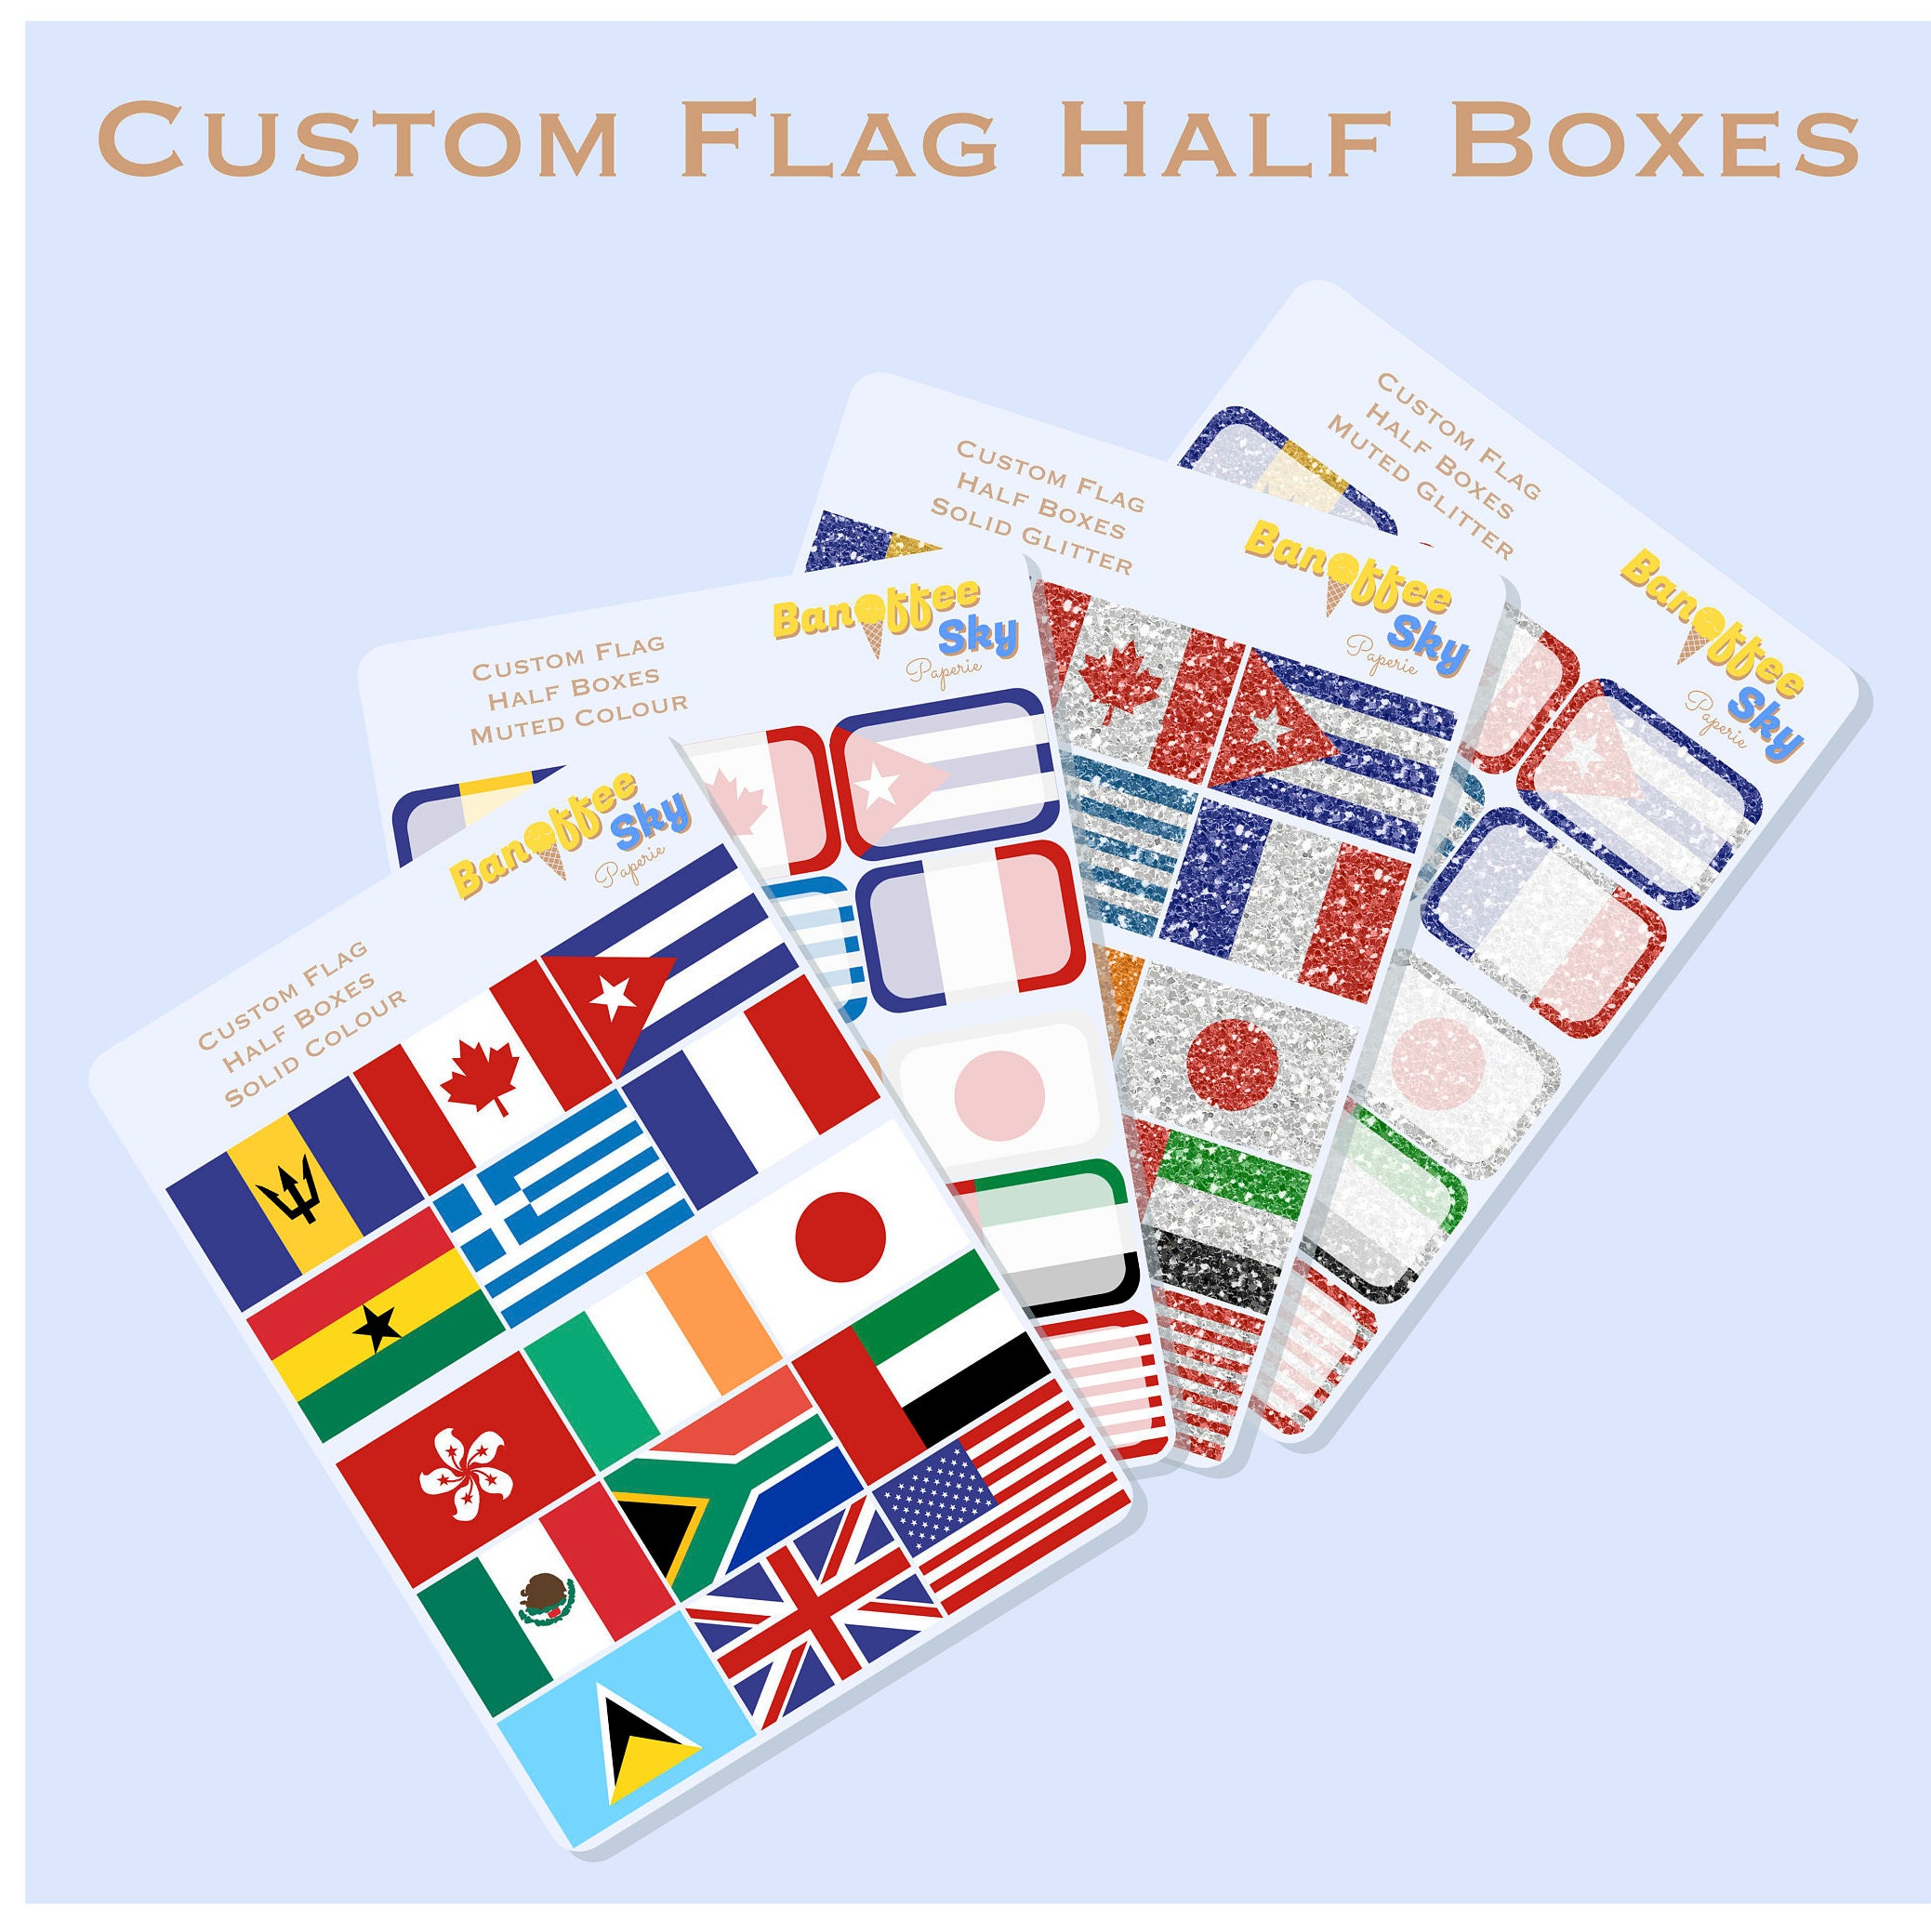 15 custom flags half box planner stickers etsy